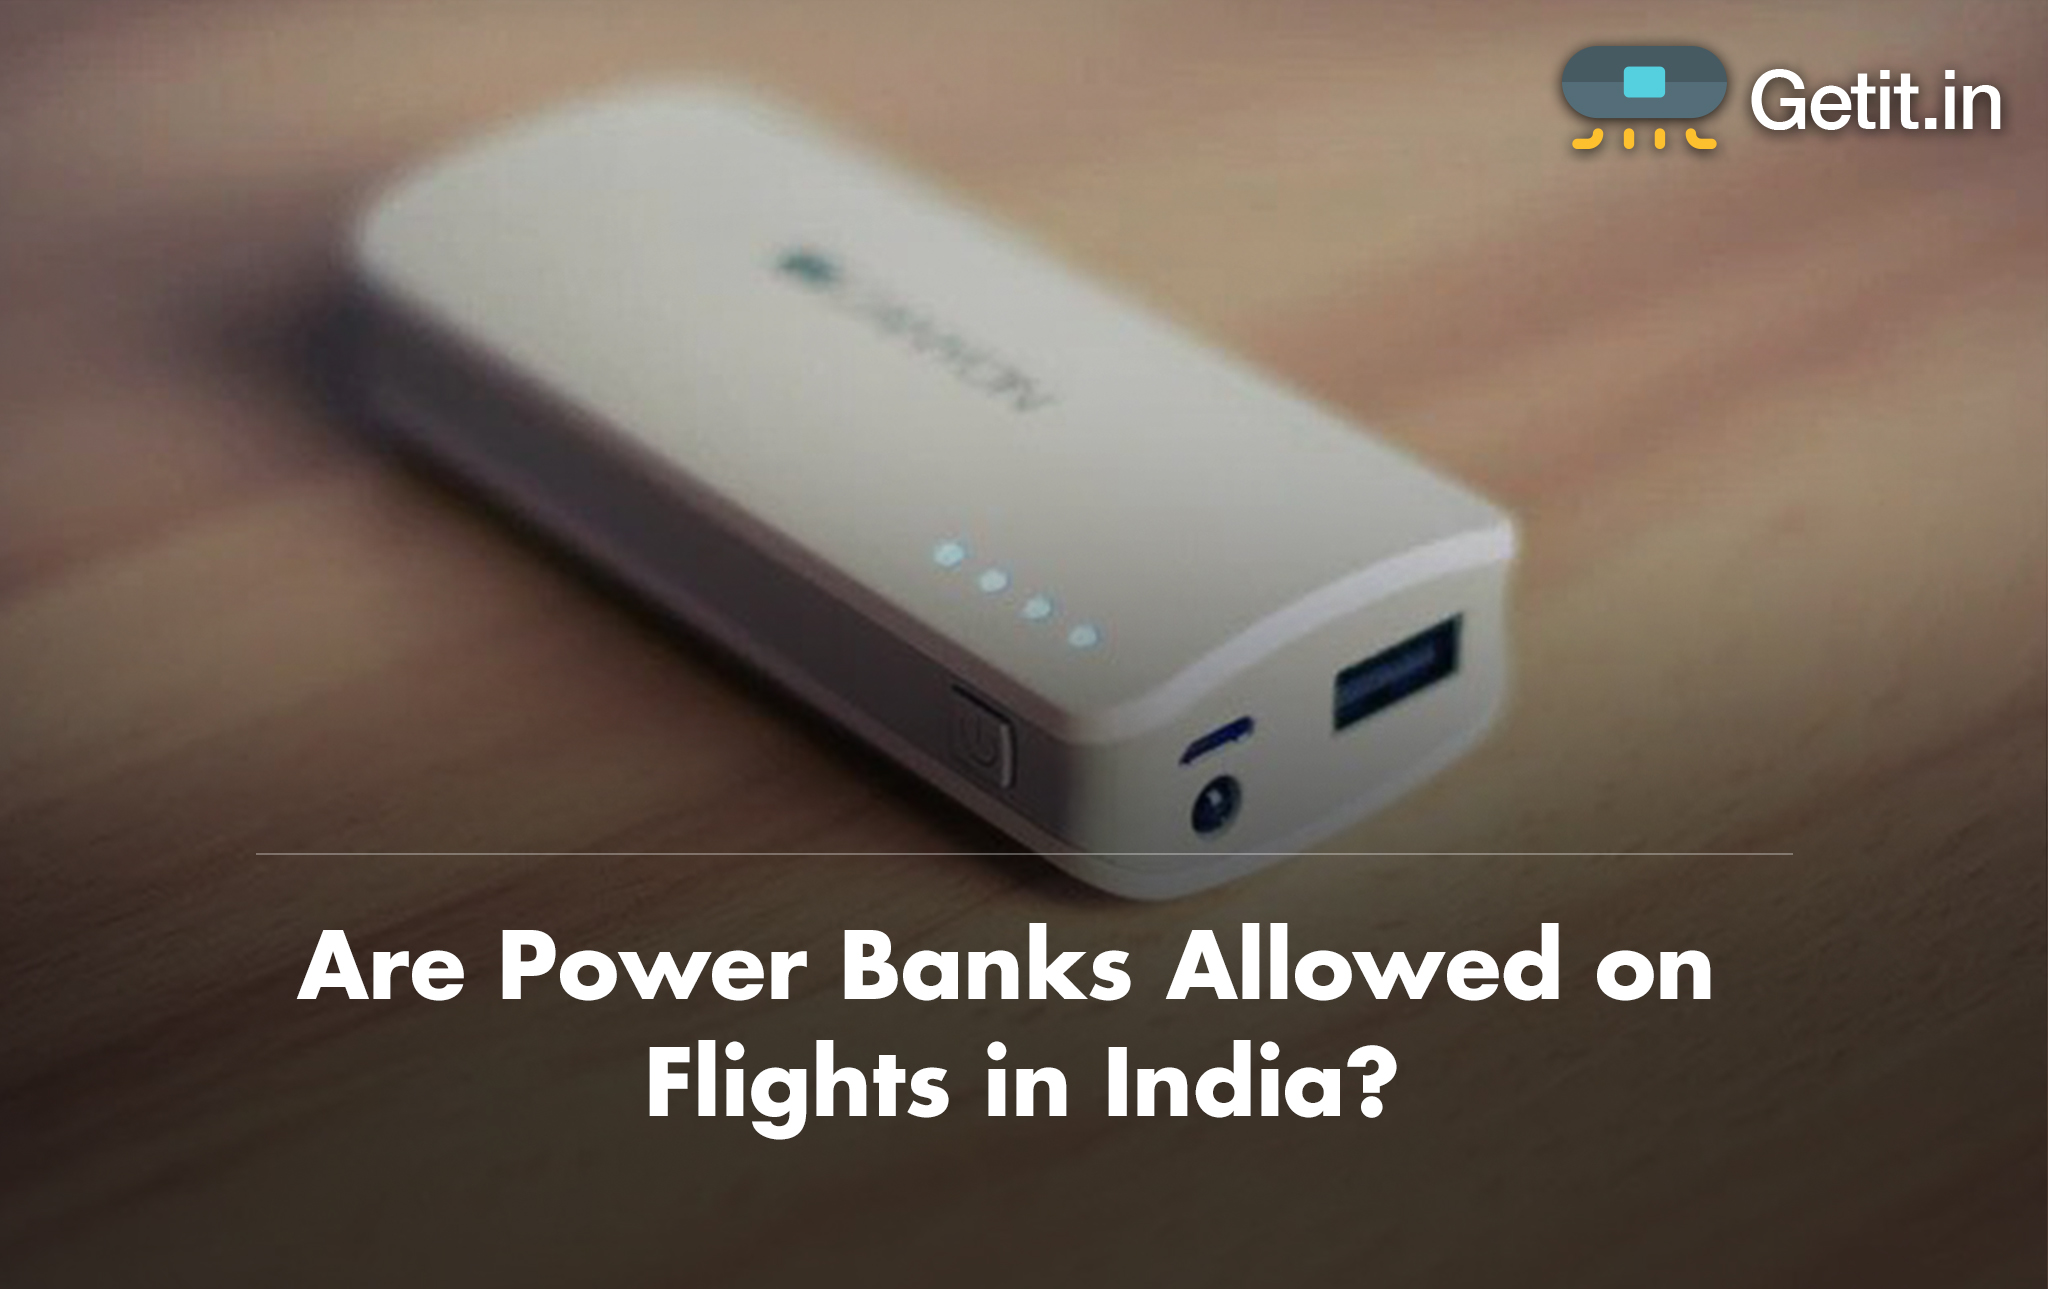 Are Power Banks Allowed on Flights in India